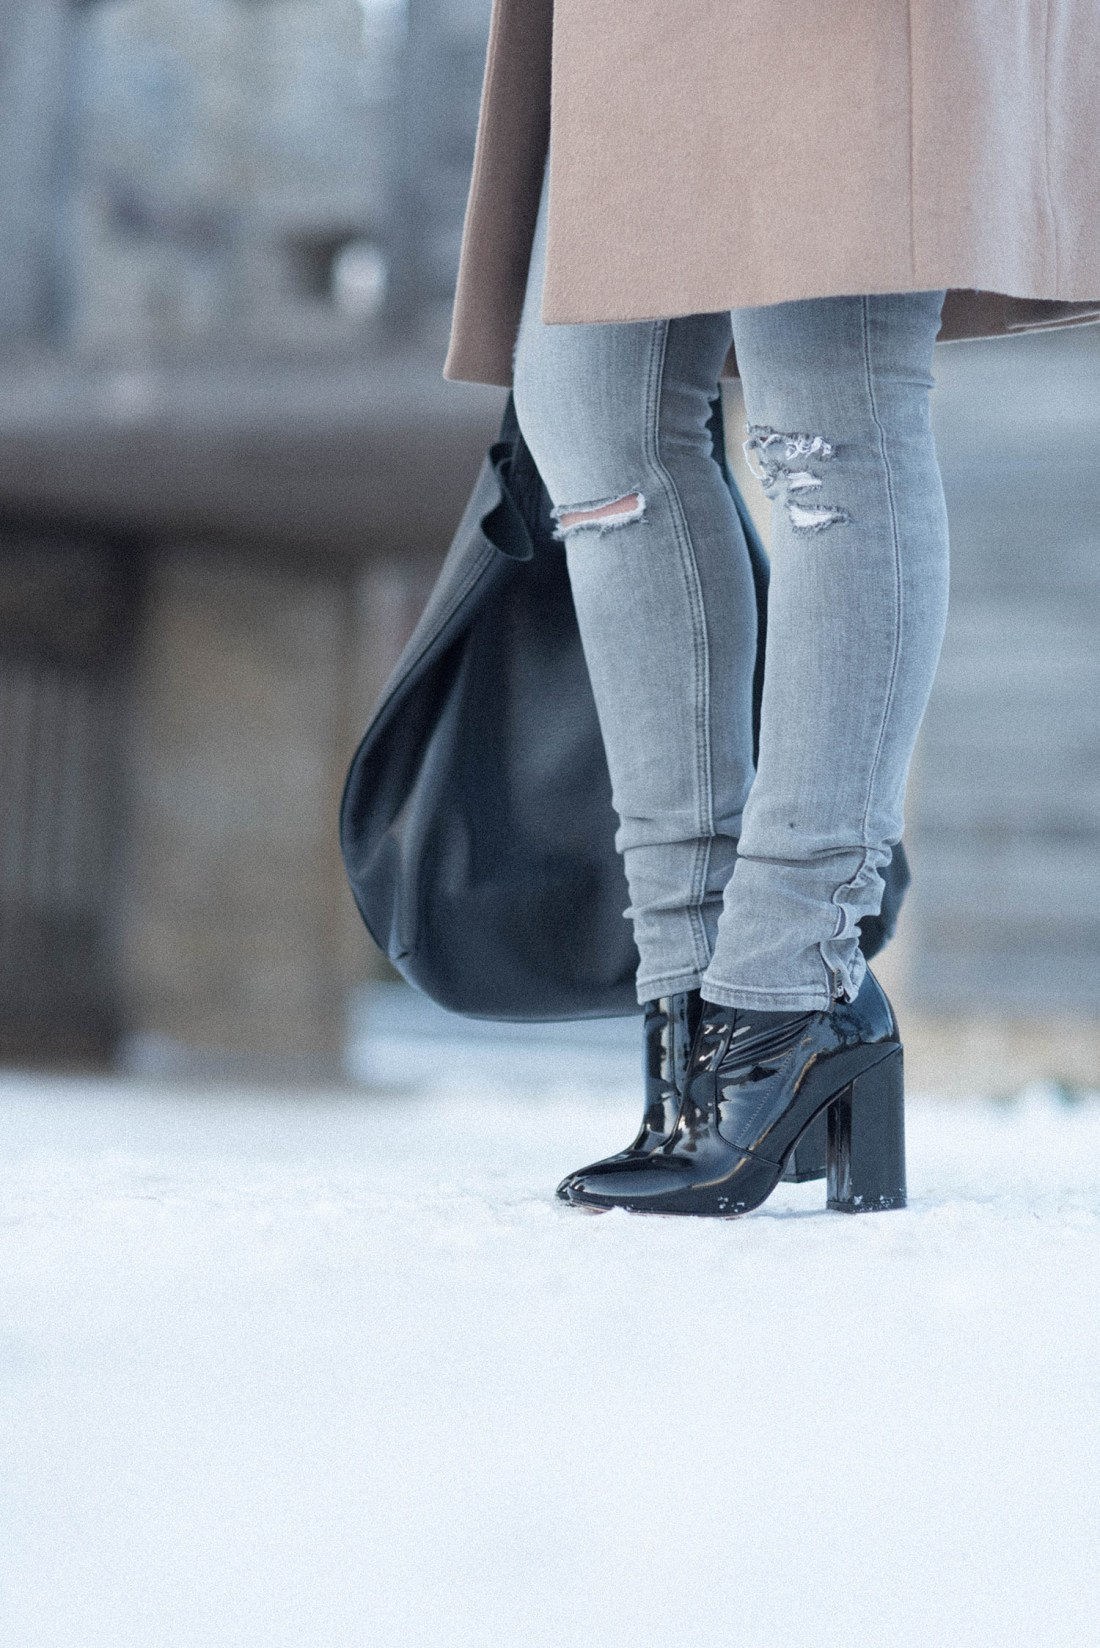 Outfit details on fashion blogger Cee Fardoe of Coco & Vera, including Ray patent leather boots and a Cuyana tote bag